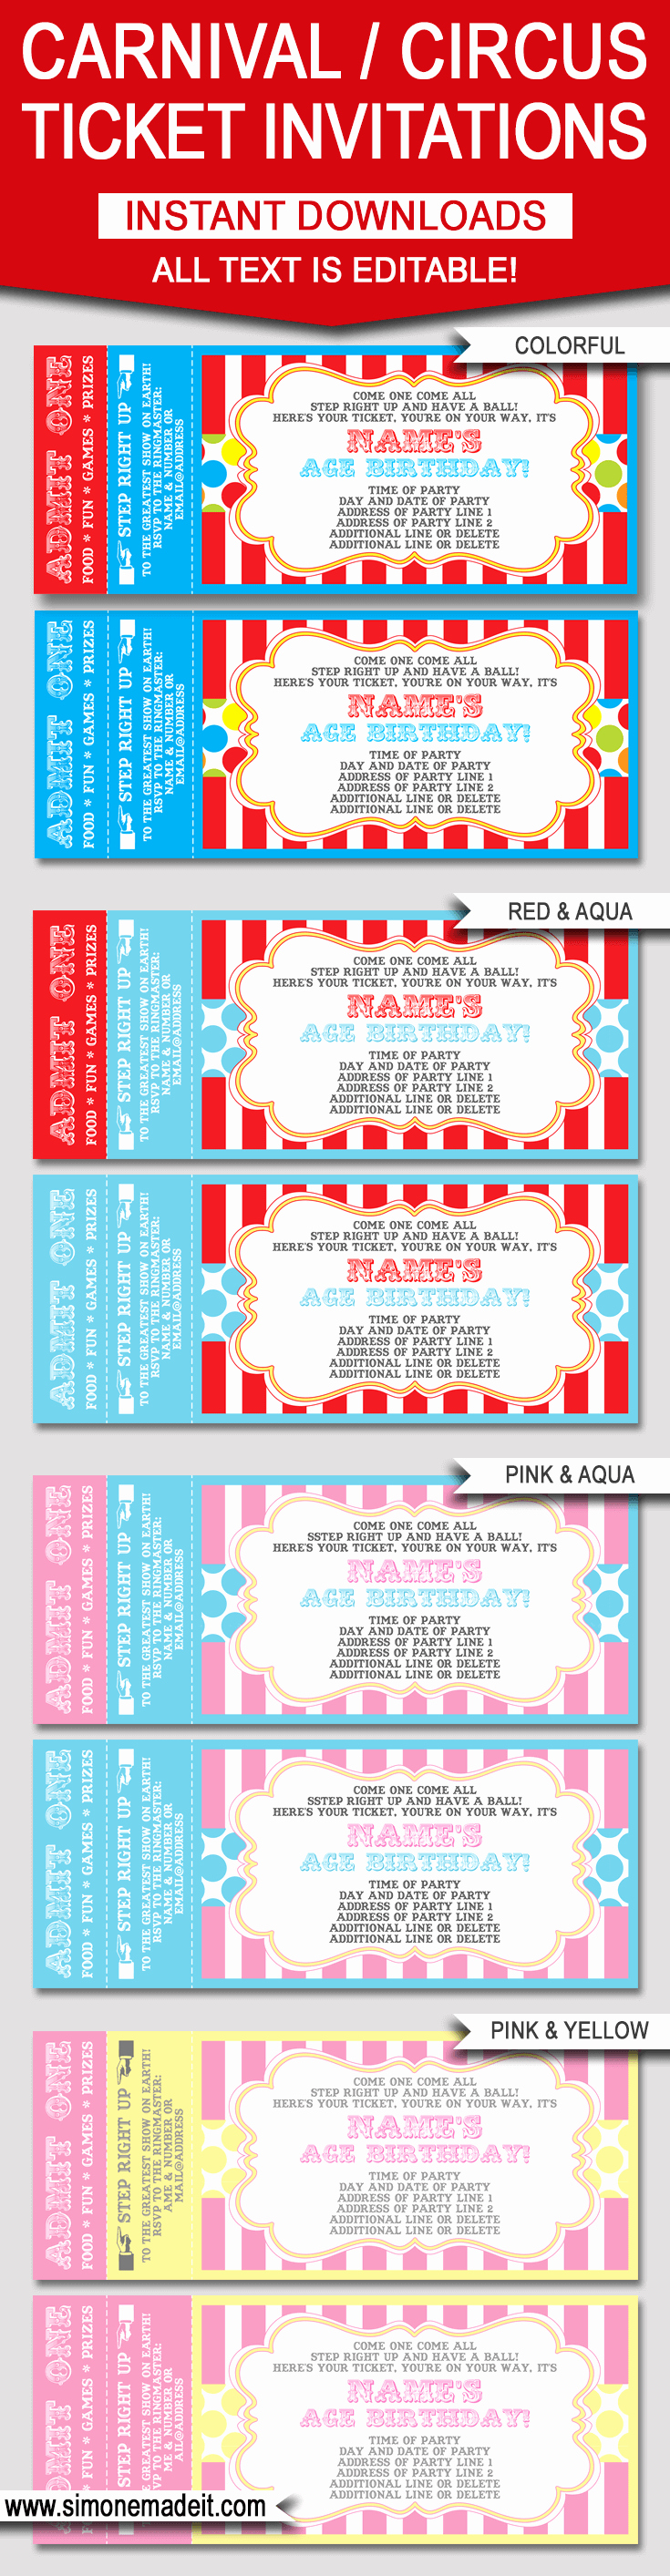 Circus Ticket Invitation Template Free Awesome Editable Carnival Ticket Invitations